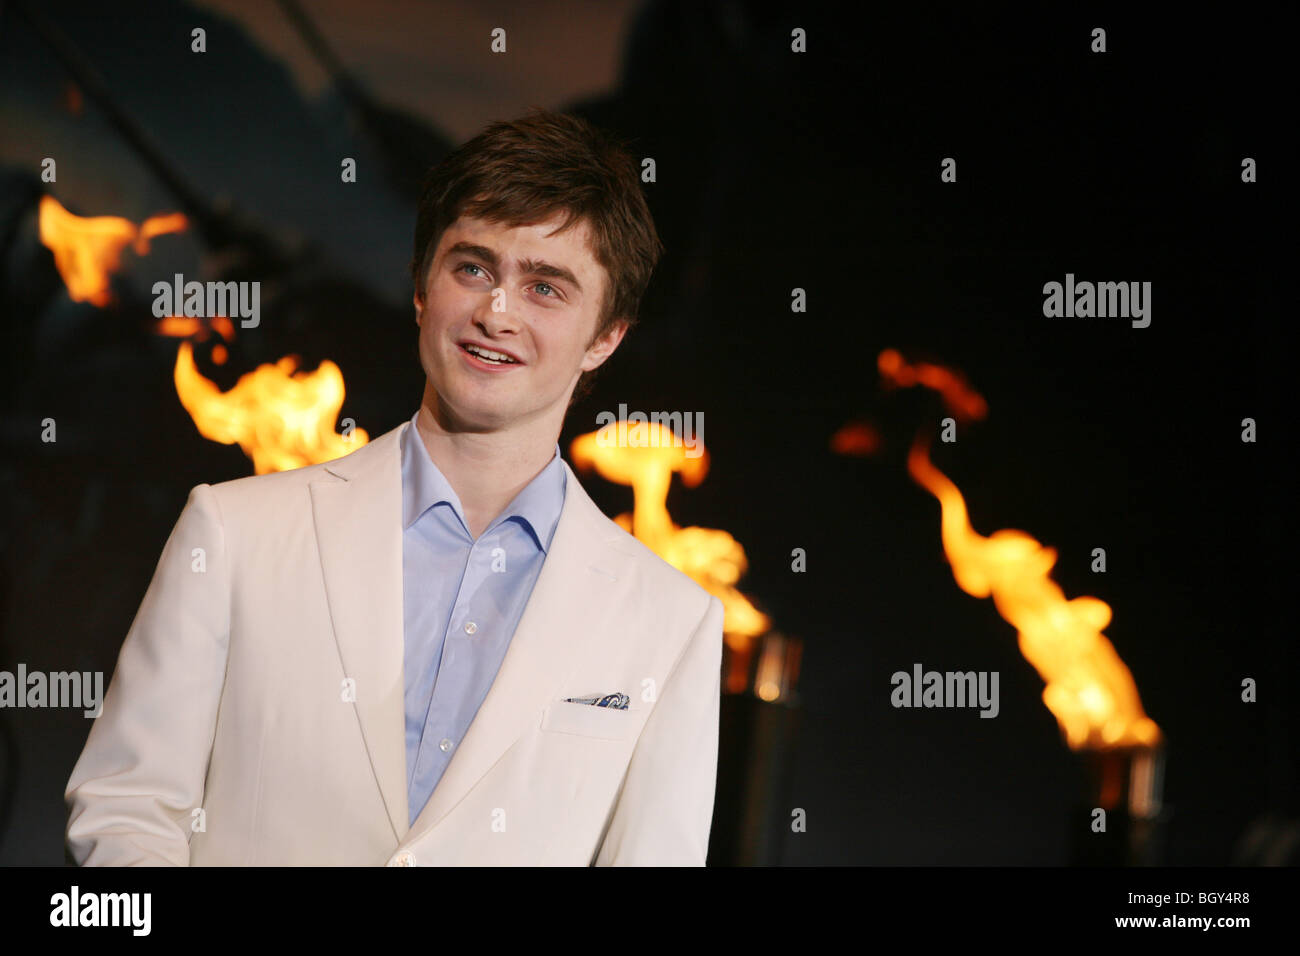 actor Daniel Radcliffe at red carpet premiere of 5th Harry Potter movie 'Harry Potter and the Order of the Phoenix', - Stock Image